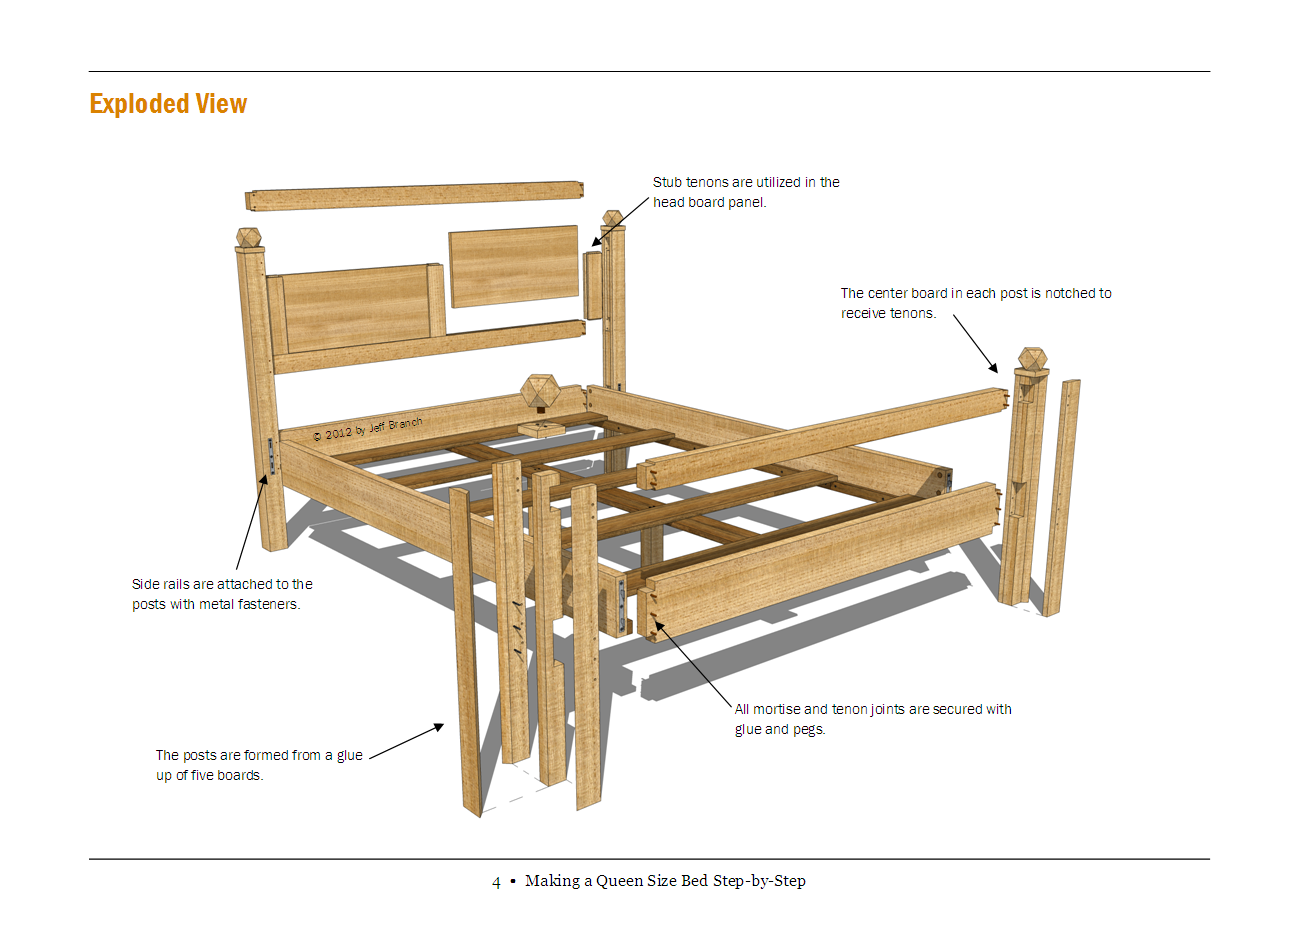 queen bed plans | ... .net: Free Woodworking Plan: Making ...